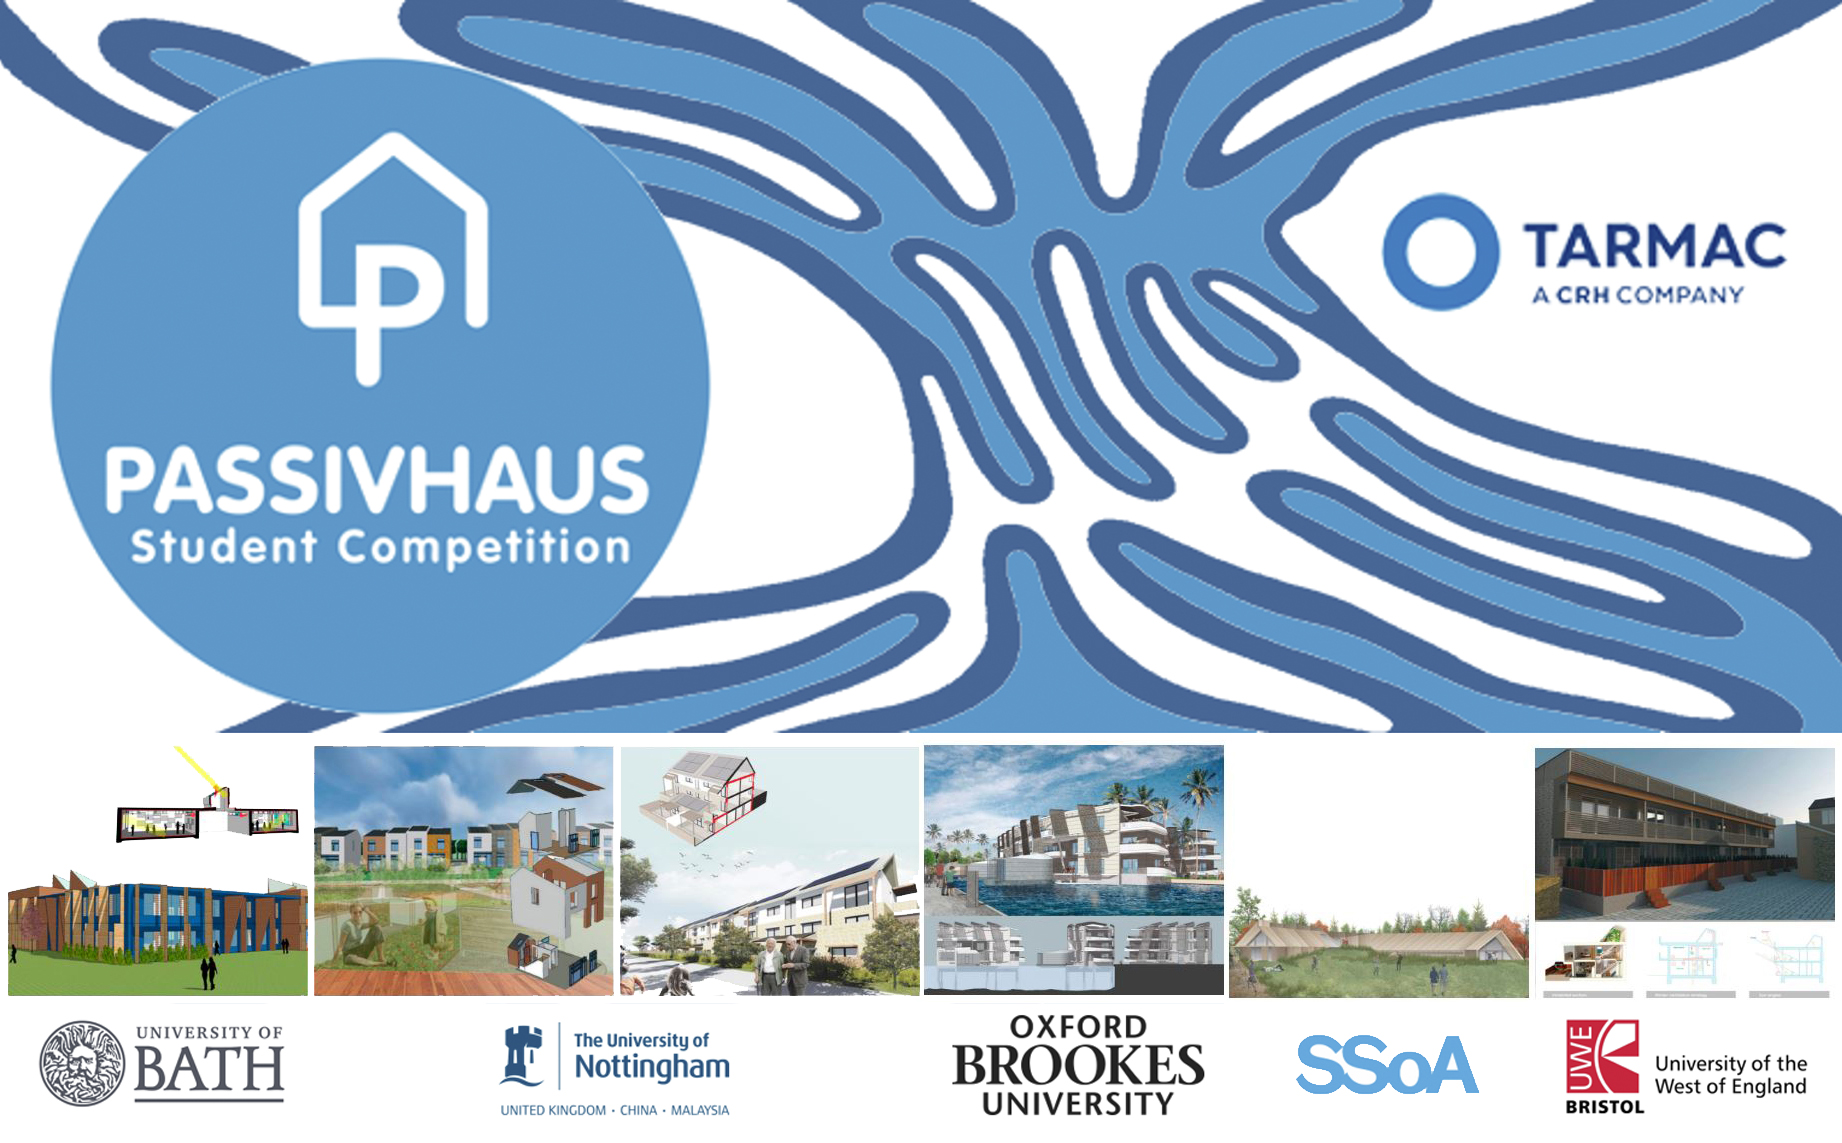 Passivhaus Student Competition